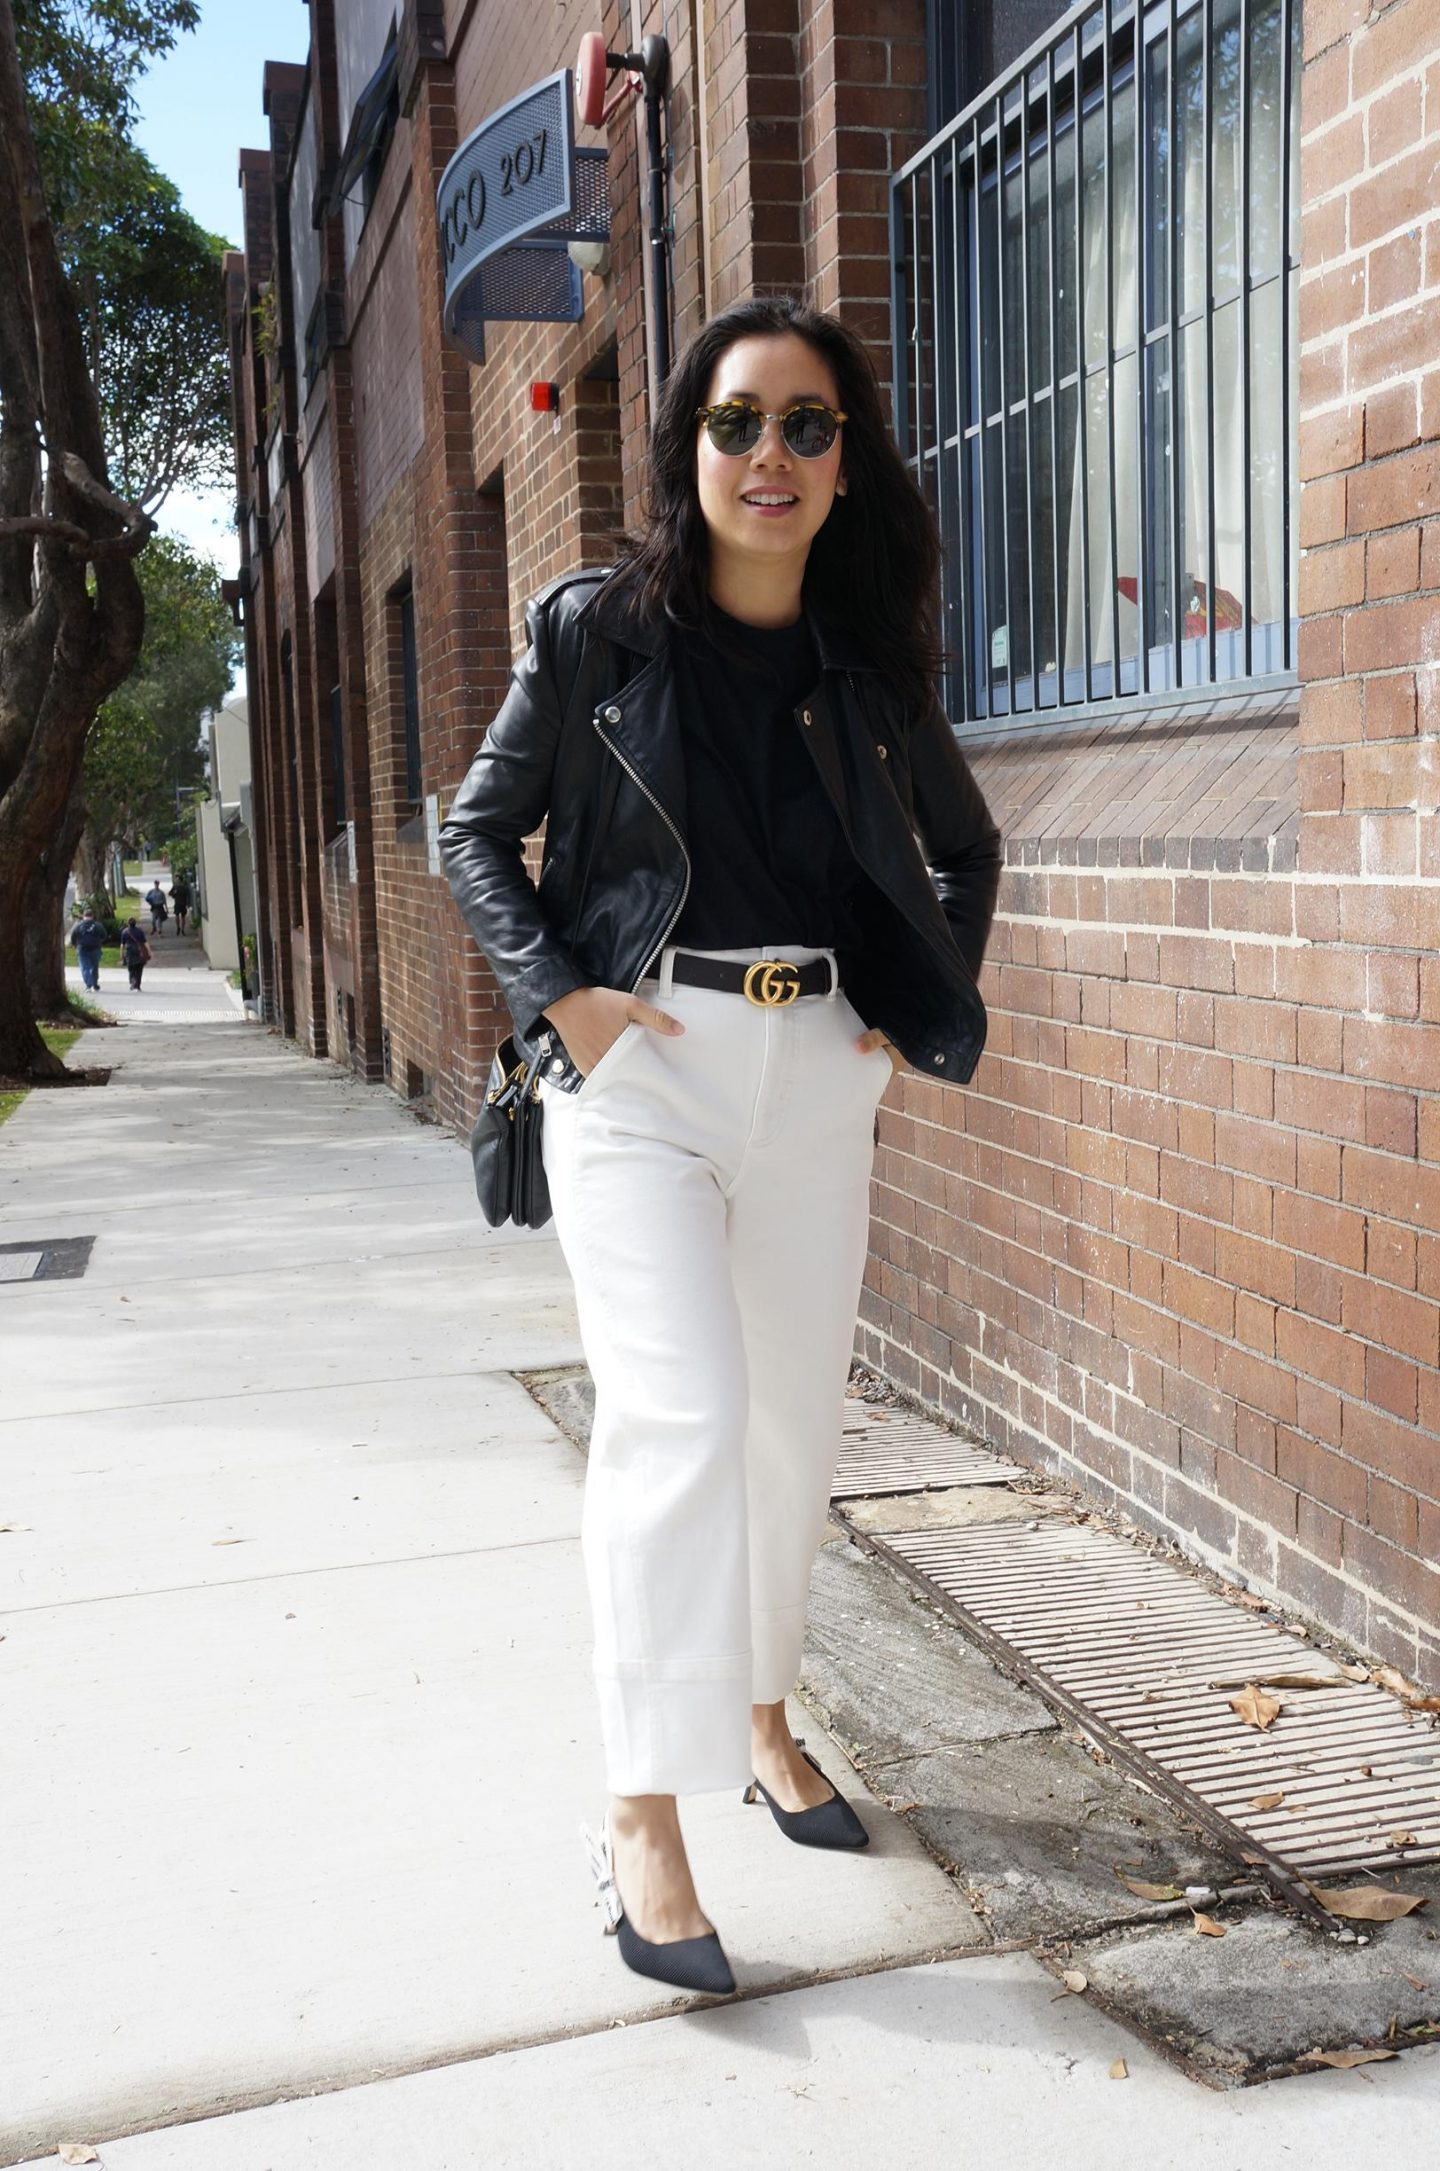 transseasonal jackets featuring leather jacket and everlane white jeans styled with gucci belt